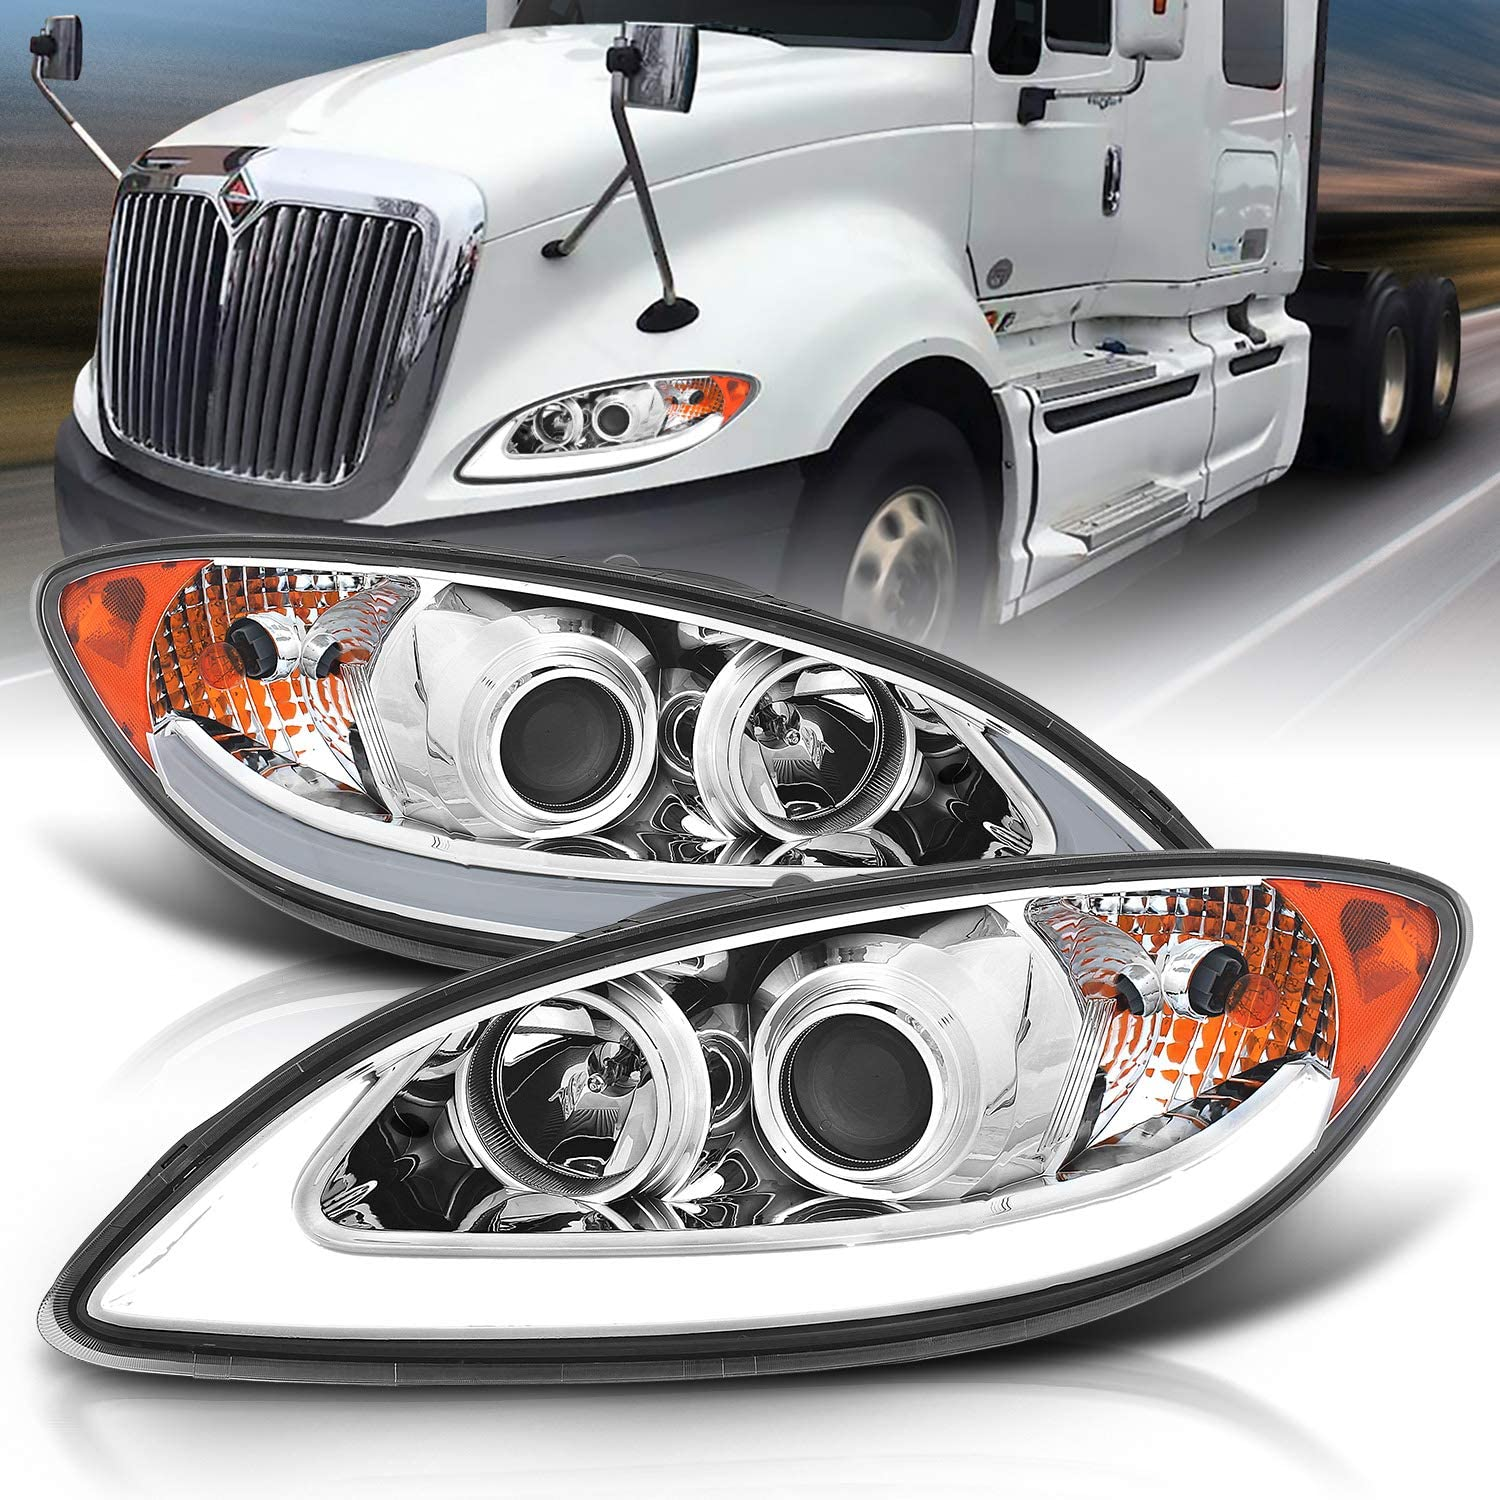 Headlight Lamp Assembly LH RH Kit Pair for International ProStar HD Truck